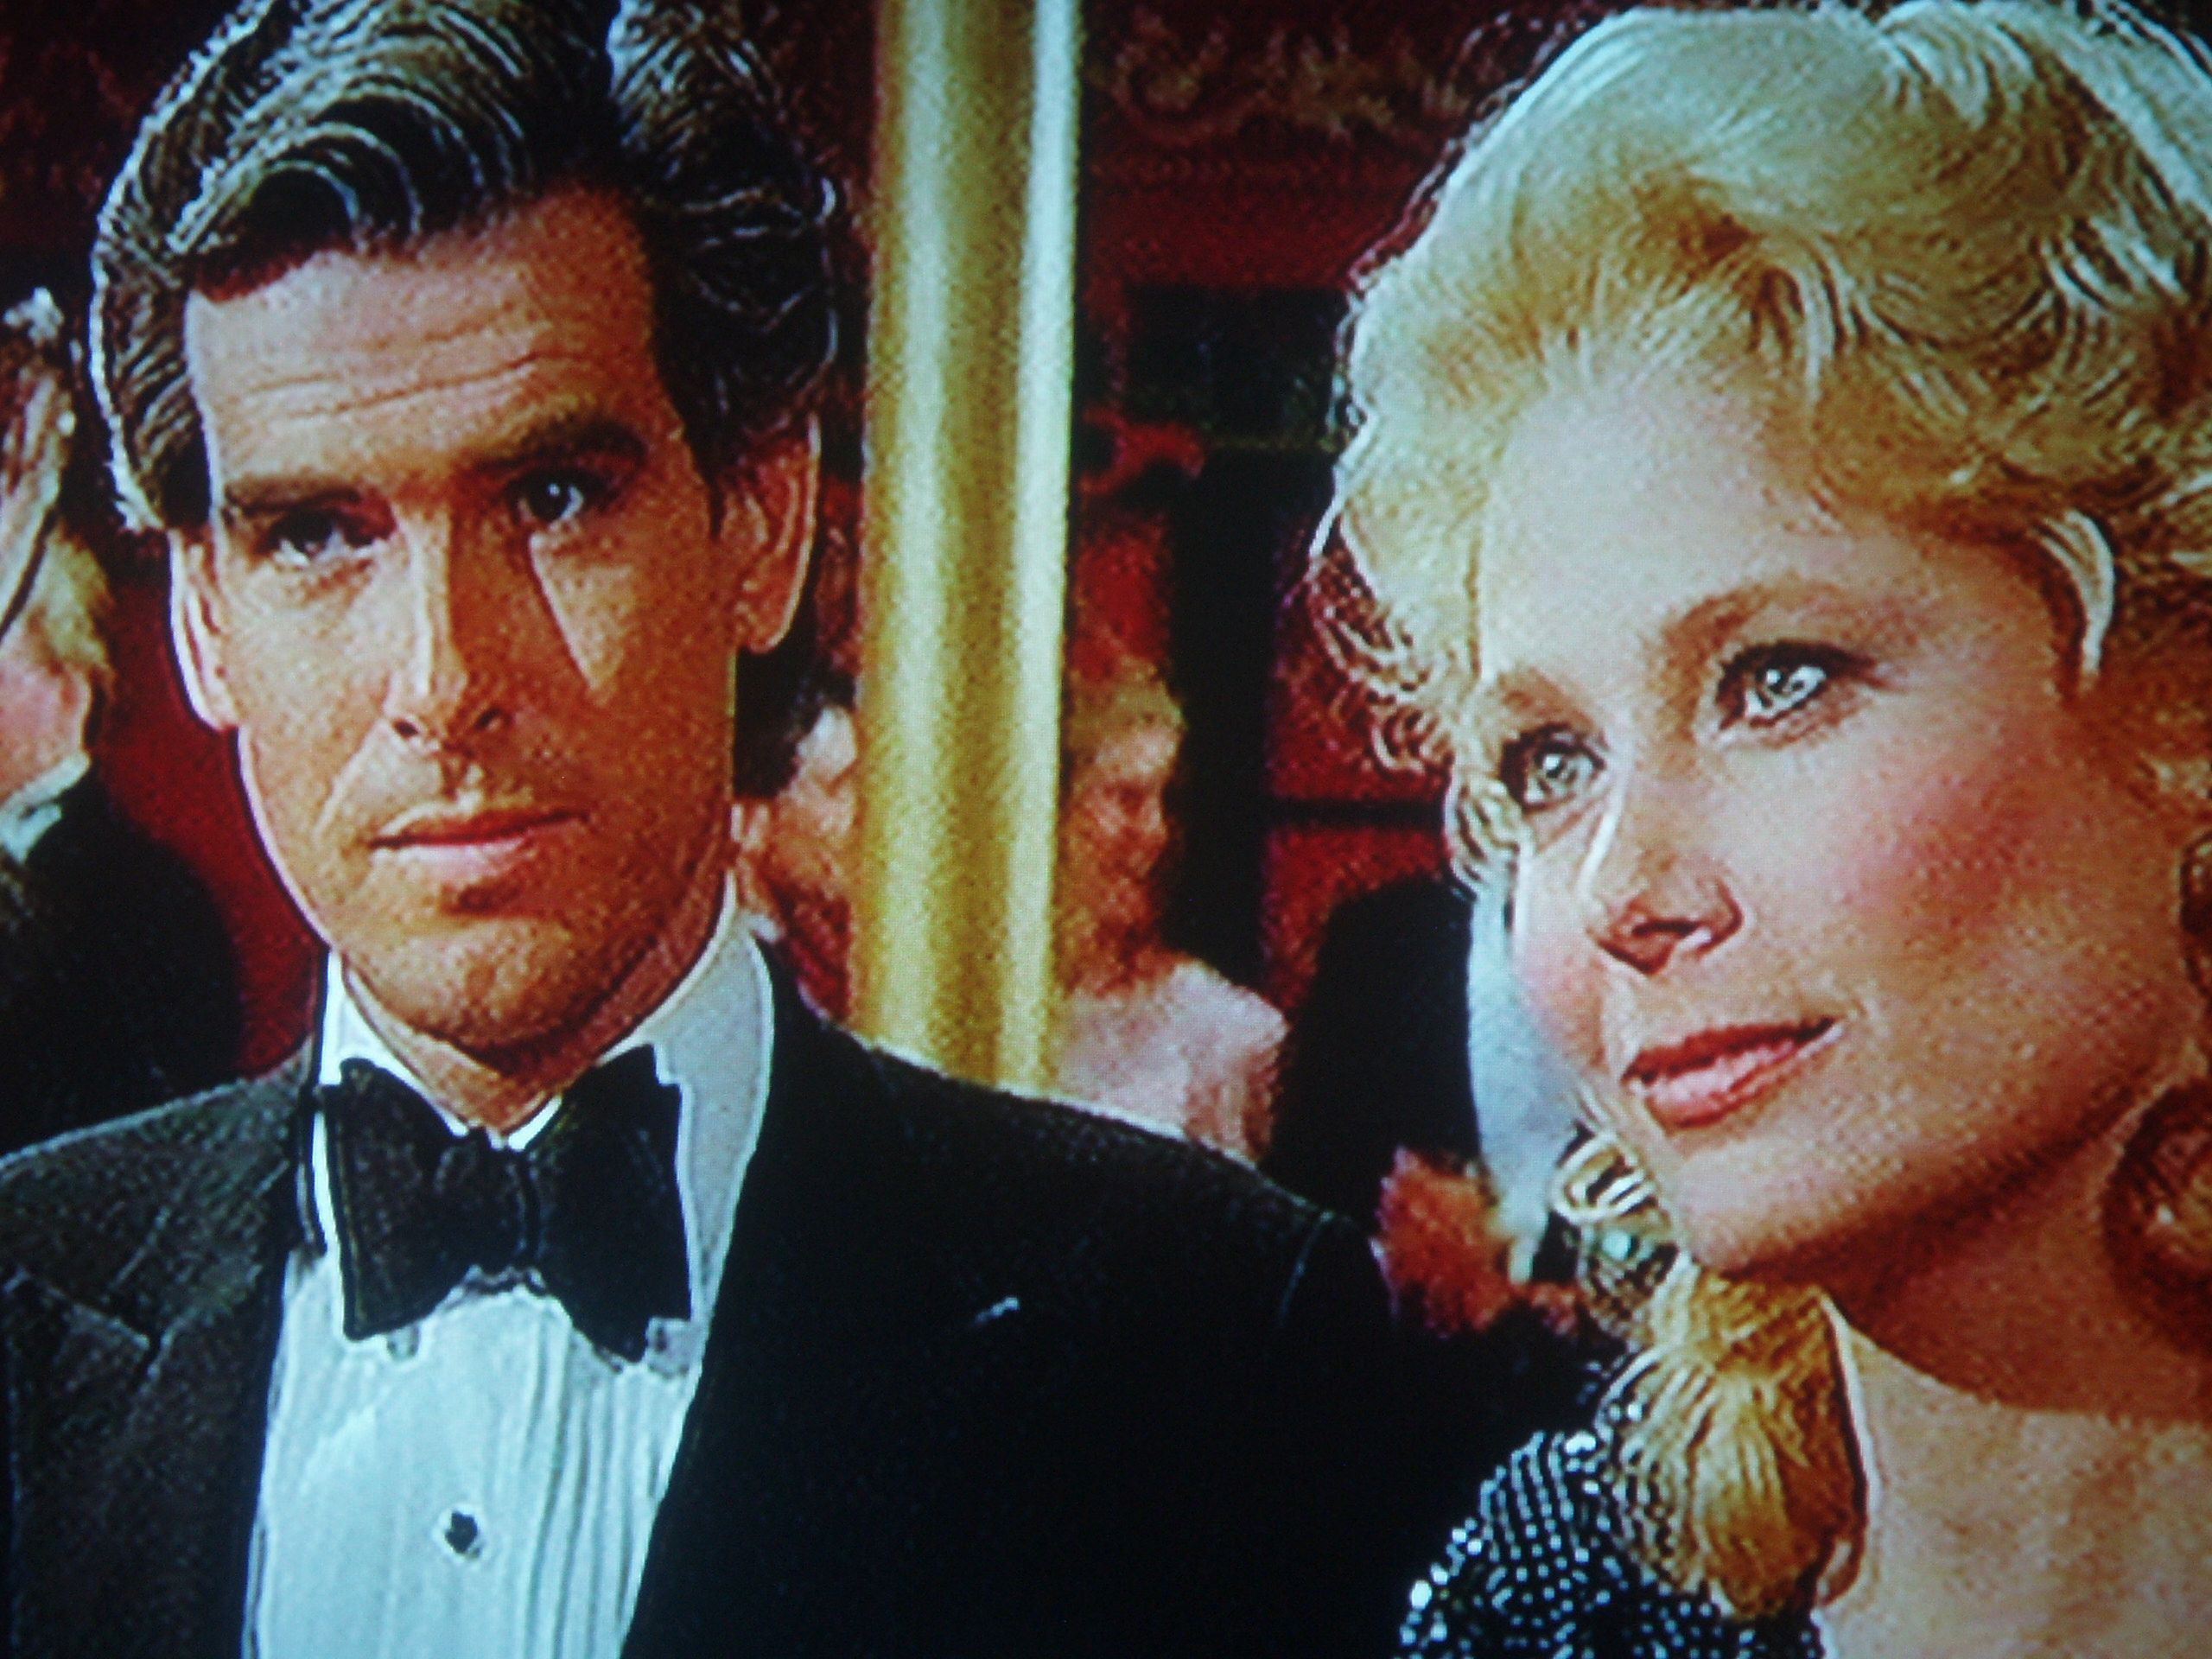 pierce brosnan and deborah raffin in quotnoble housequot 1988